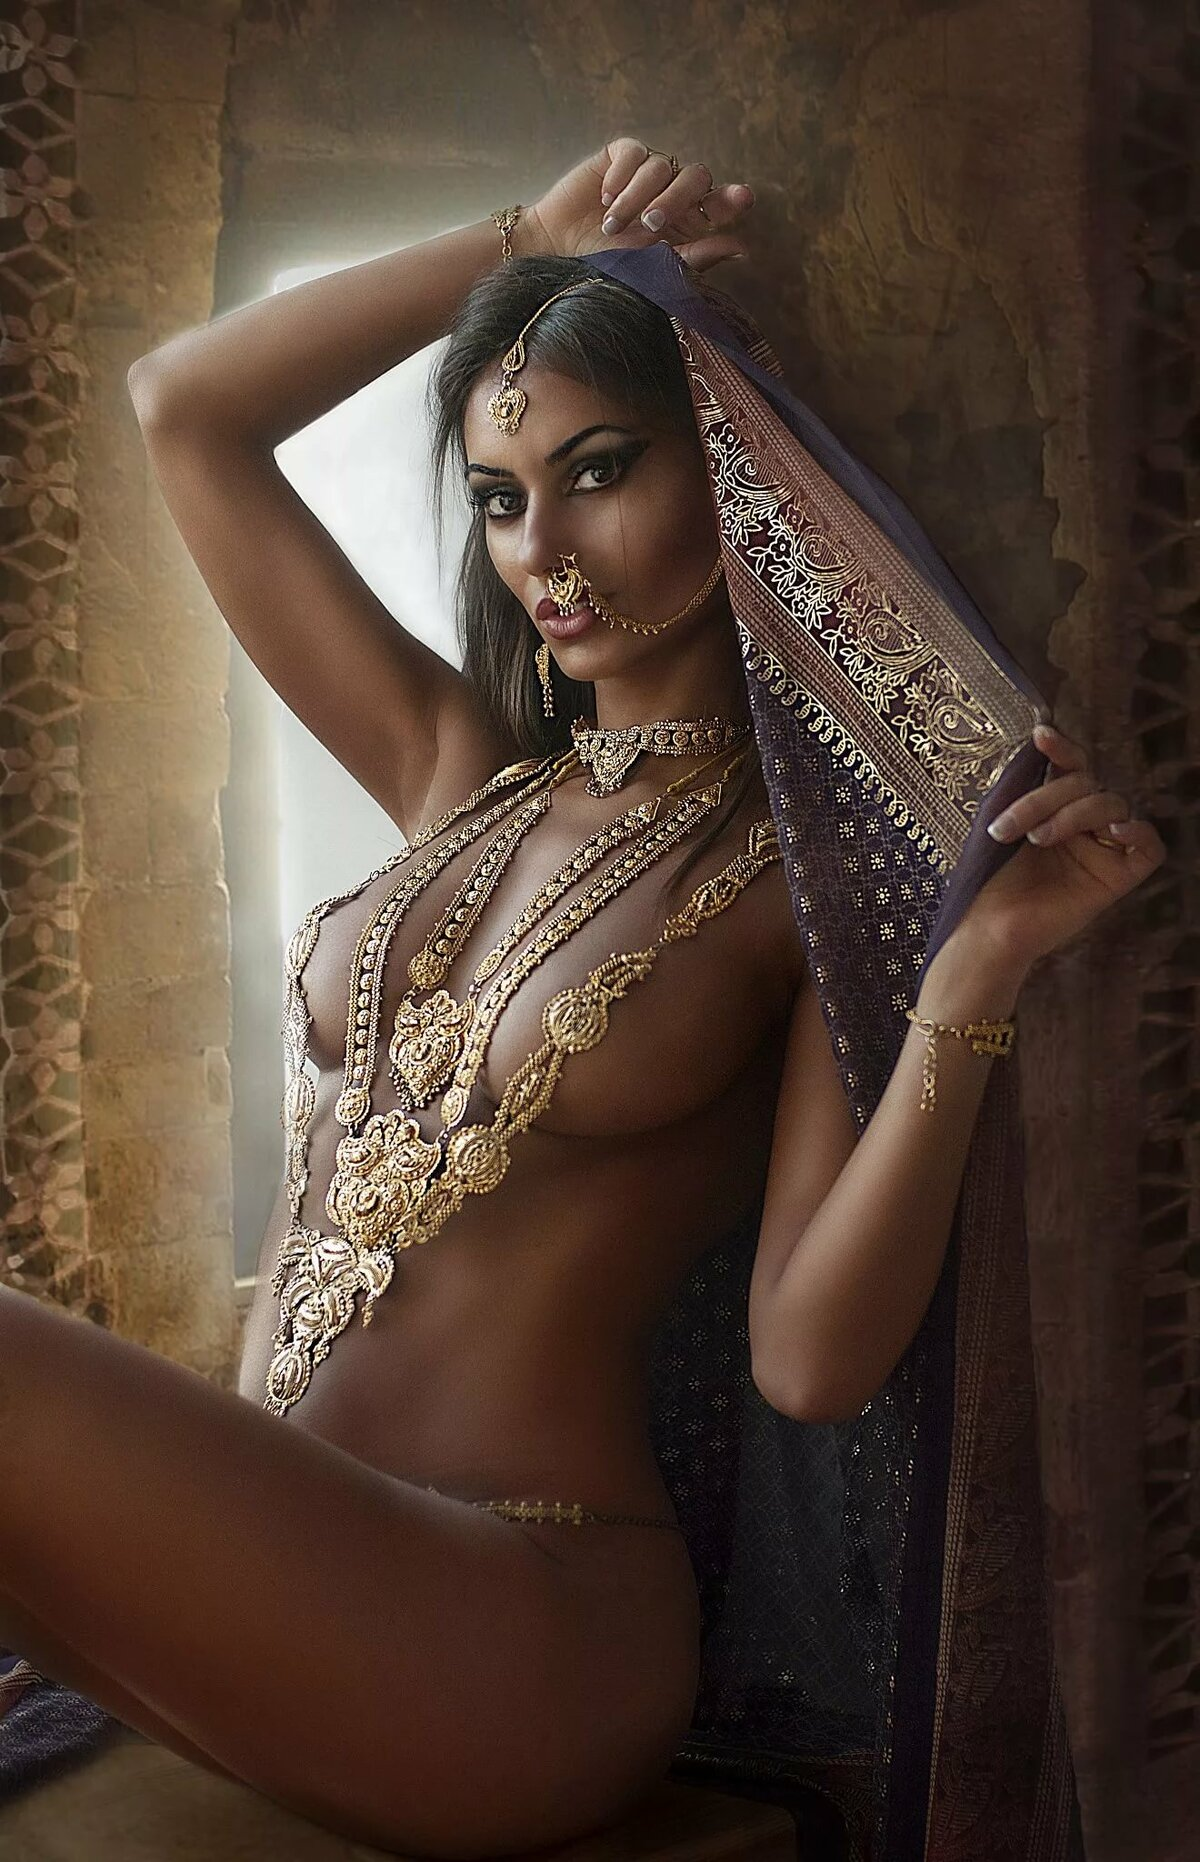 Indian girl nude art — photo 12